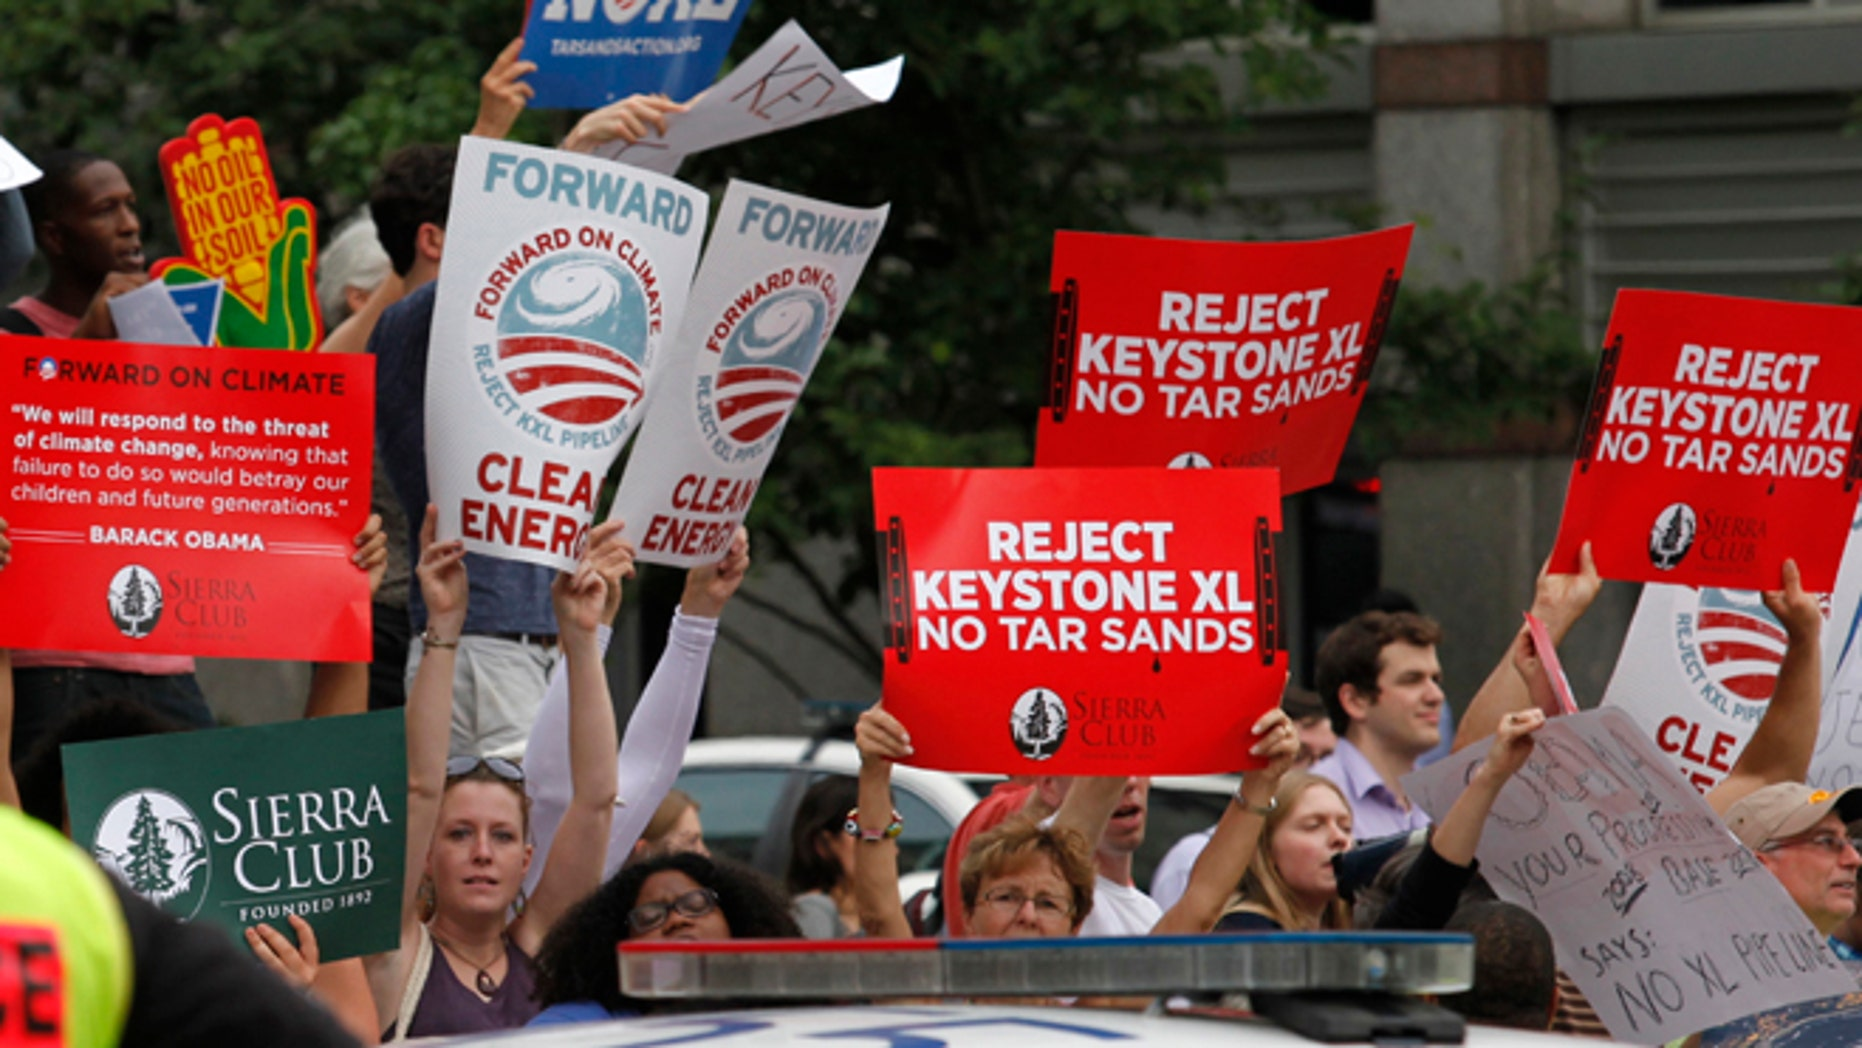 FILE: July 11, 2013: Protesters rally about the Keystone XL oil pipeline, in Washington, D.C.